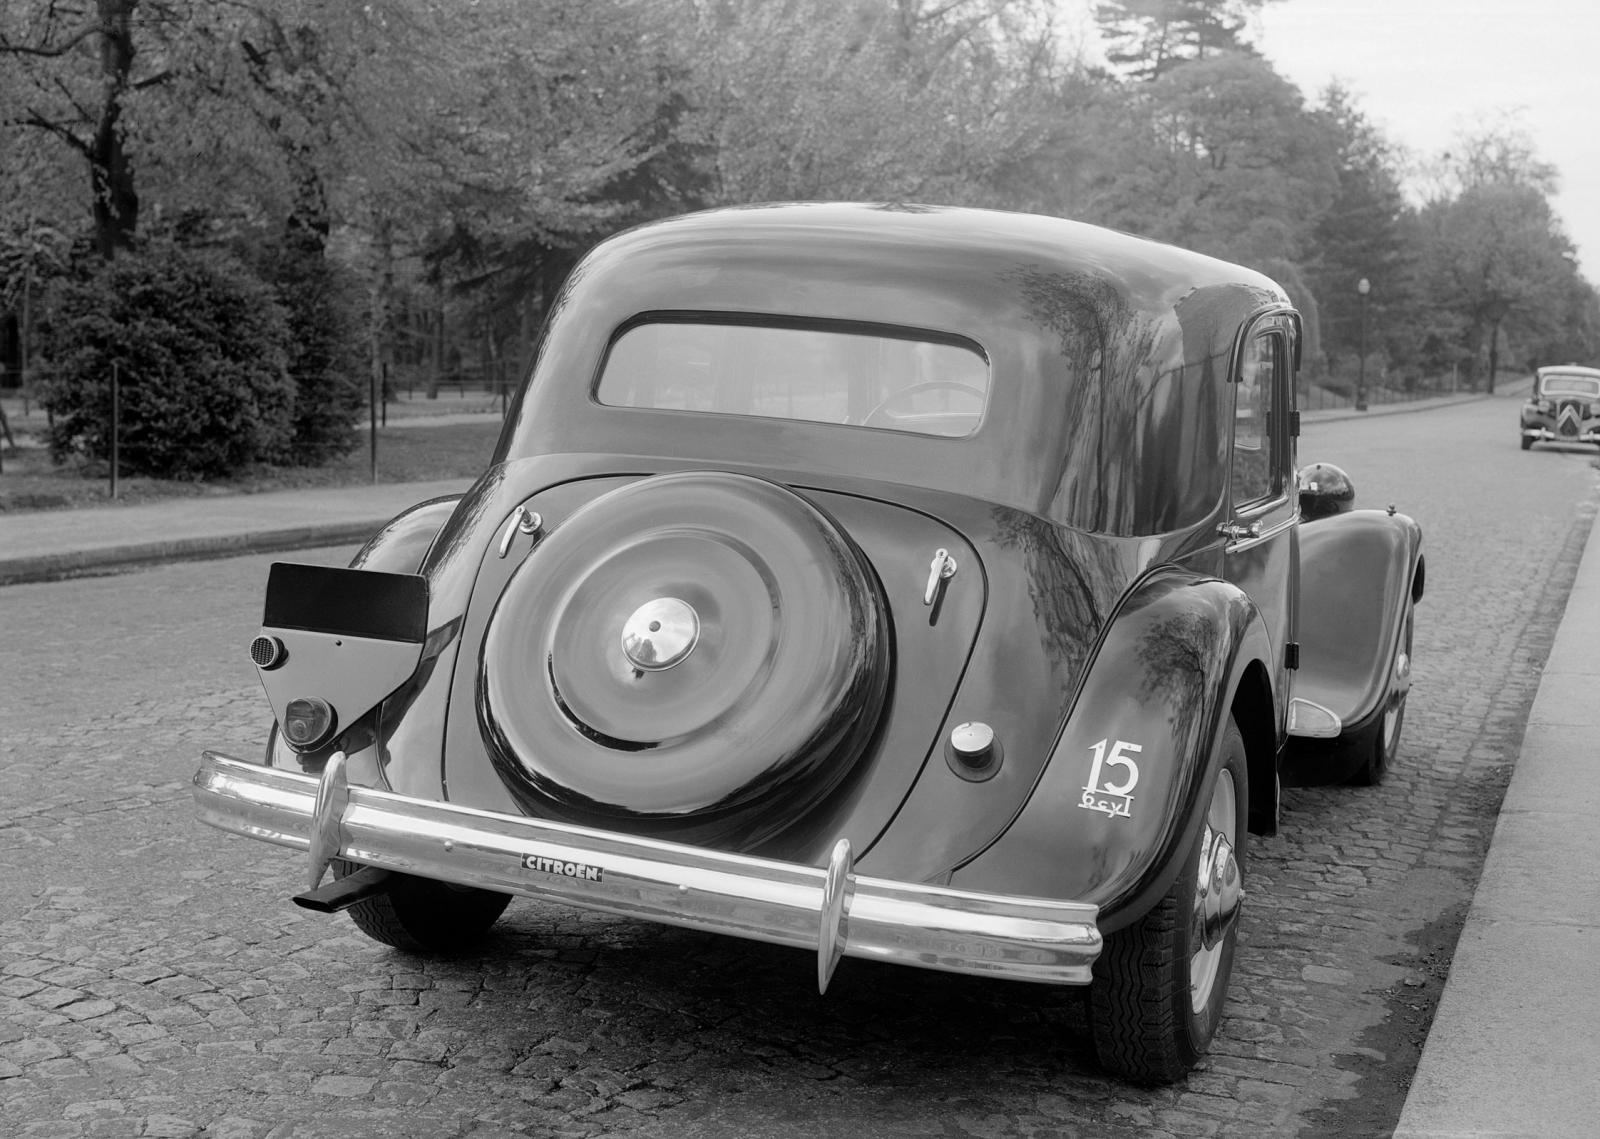 Traction 15 SIX G 1939 m.